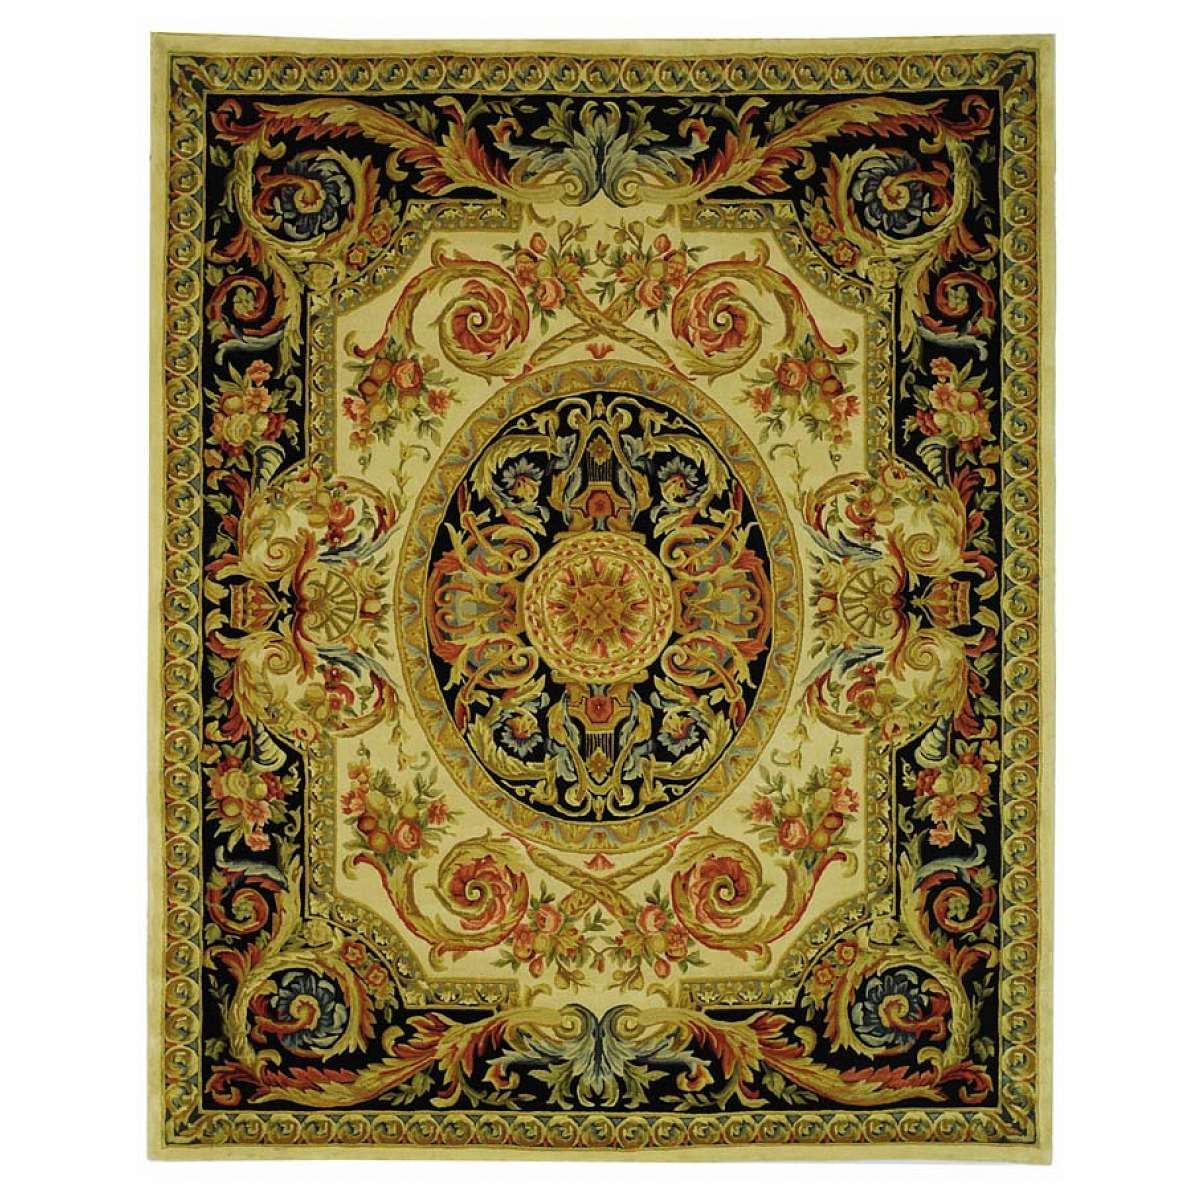 French Savonnerie rug.